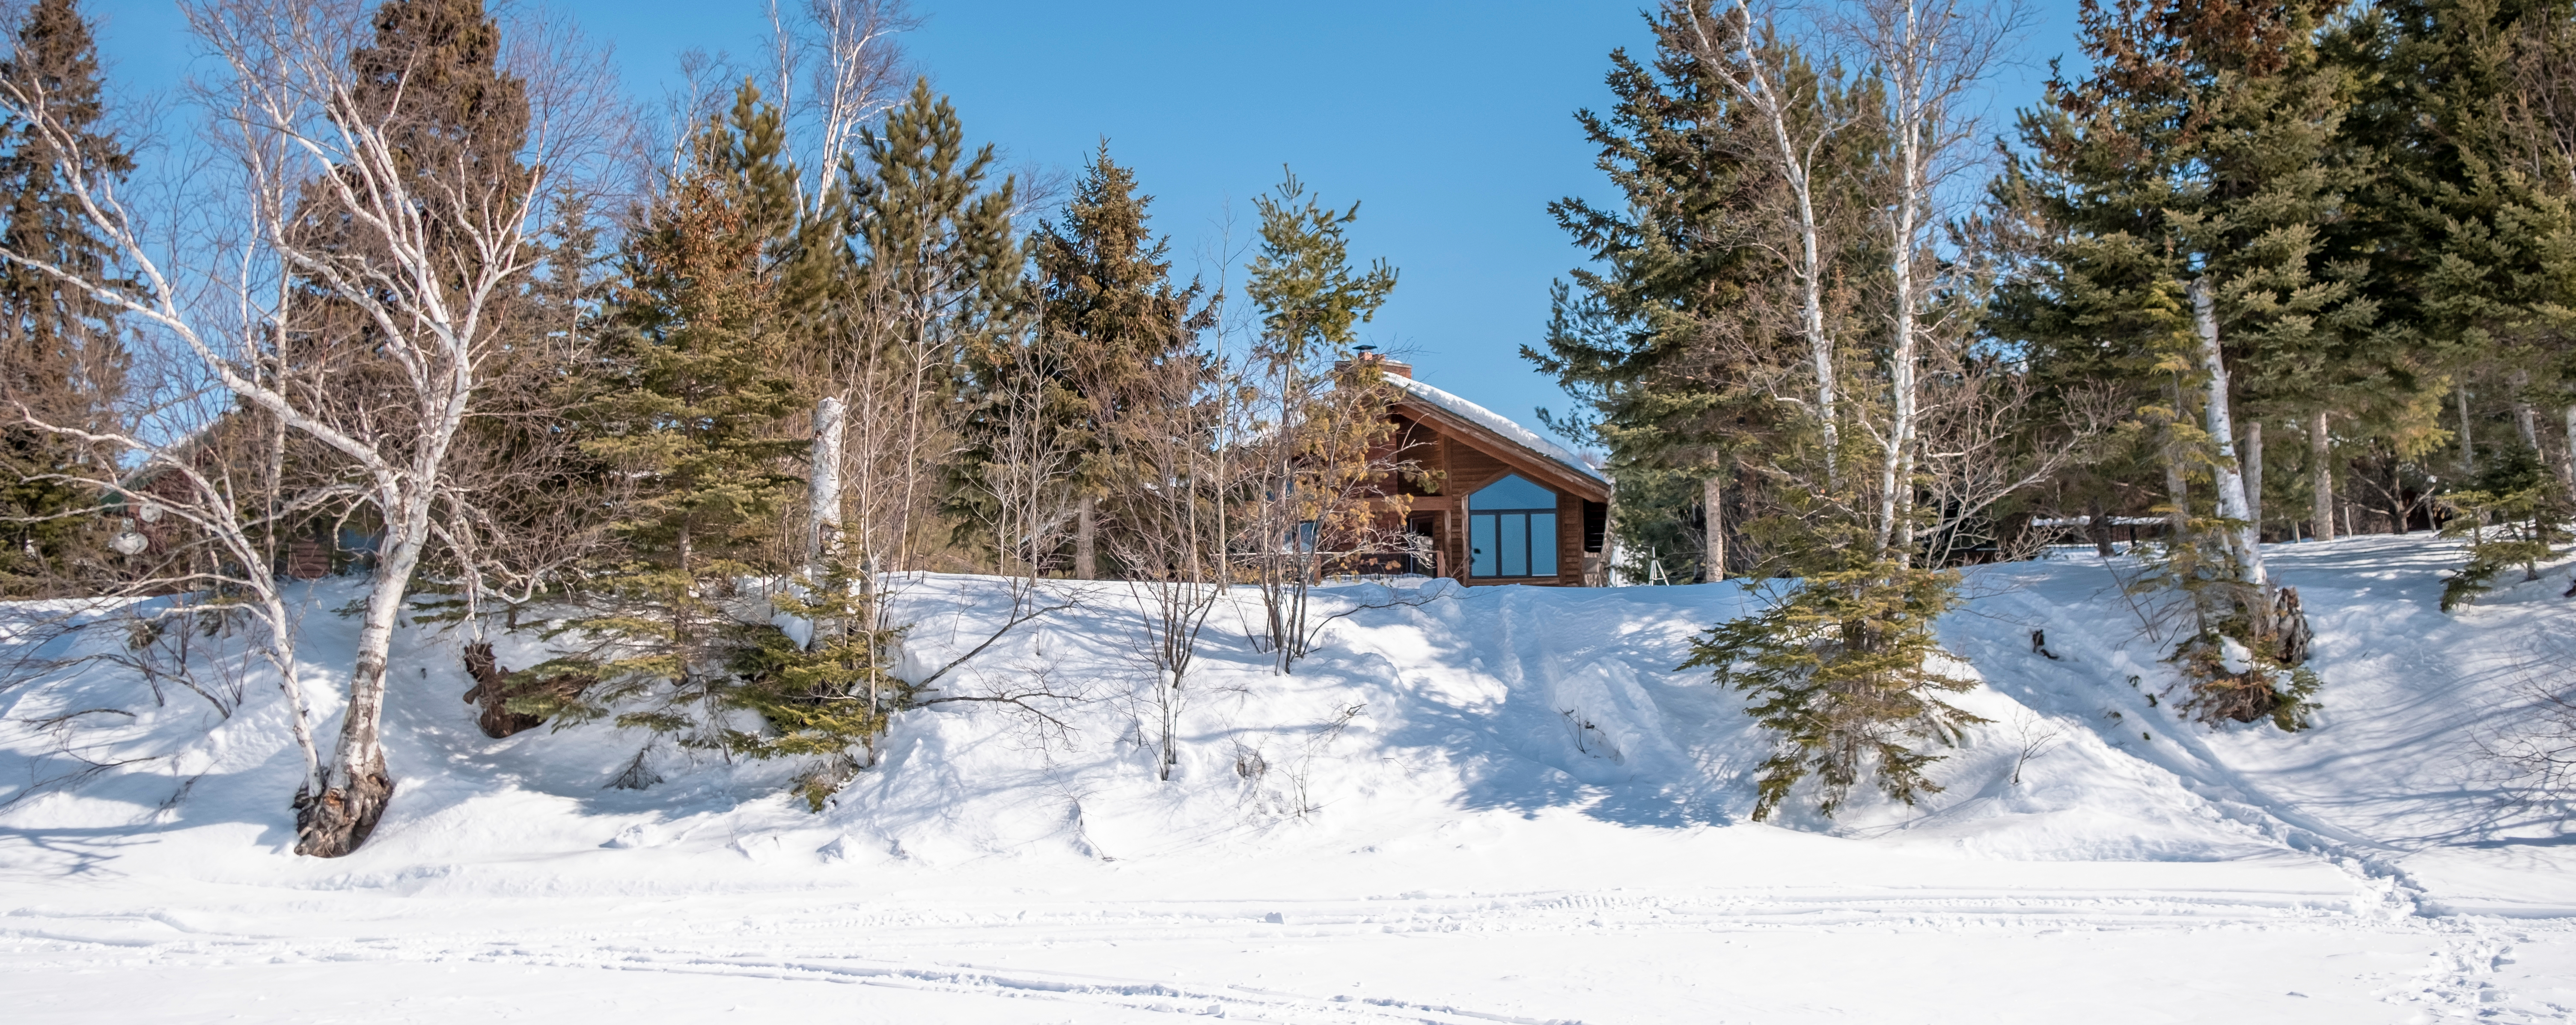 29 Must Stay Cabins In Minnesota And Wisconsin Girl Of 10 000 Lakes Because of our excellent residential and commercial pool services, we have been awarded the 2017 , 2018 , and, 2019 guild master honor for service excellence. girl of 10000 lakes